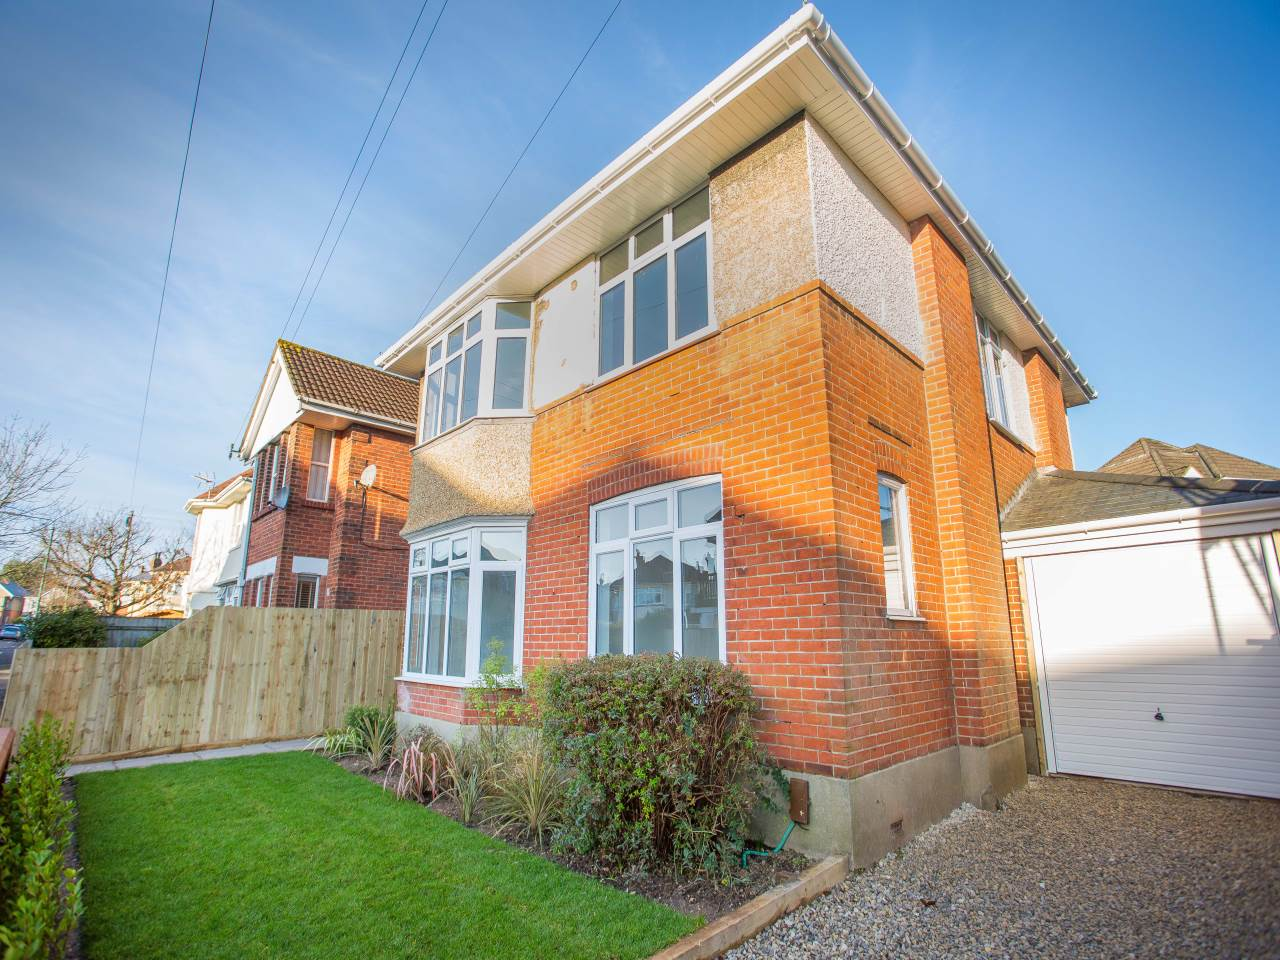 4 bed detached house for sale in Truscott Avenue, Bournemouth, BH9